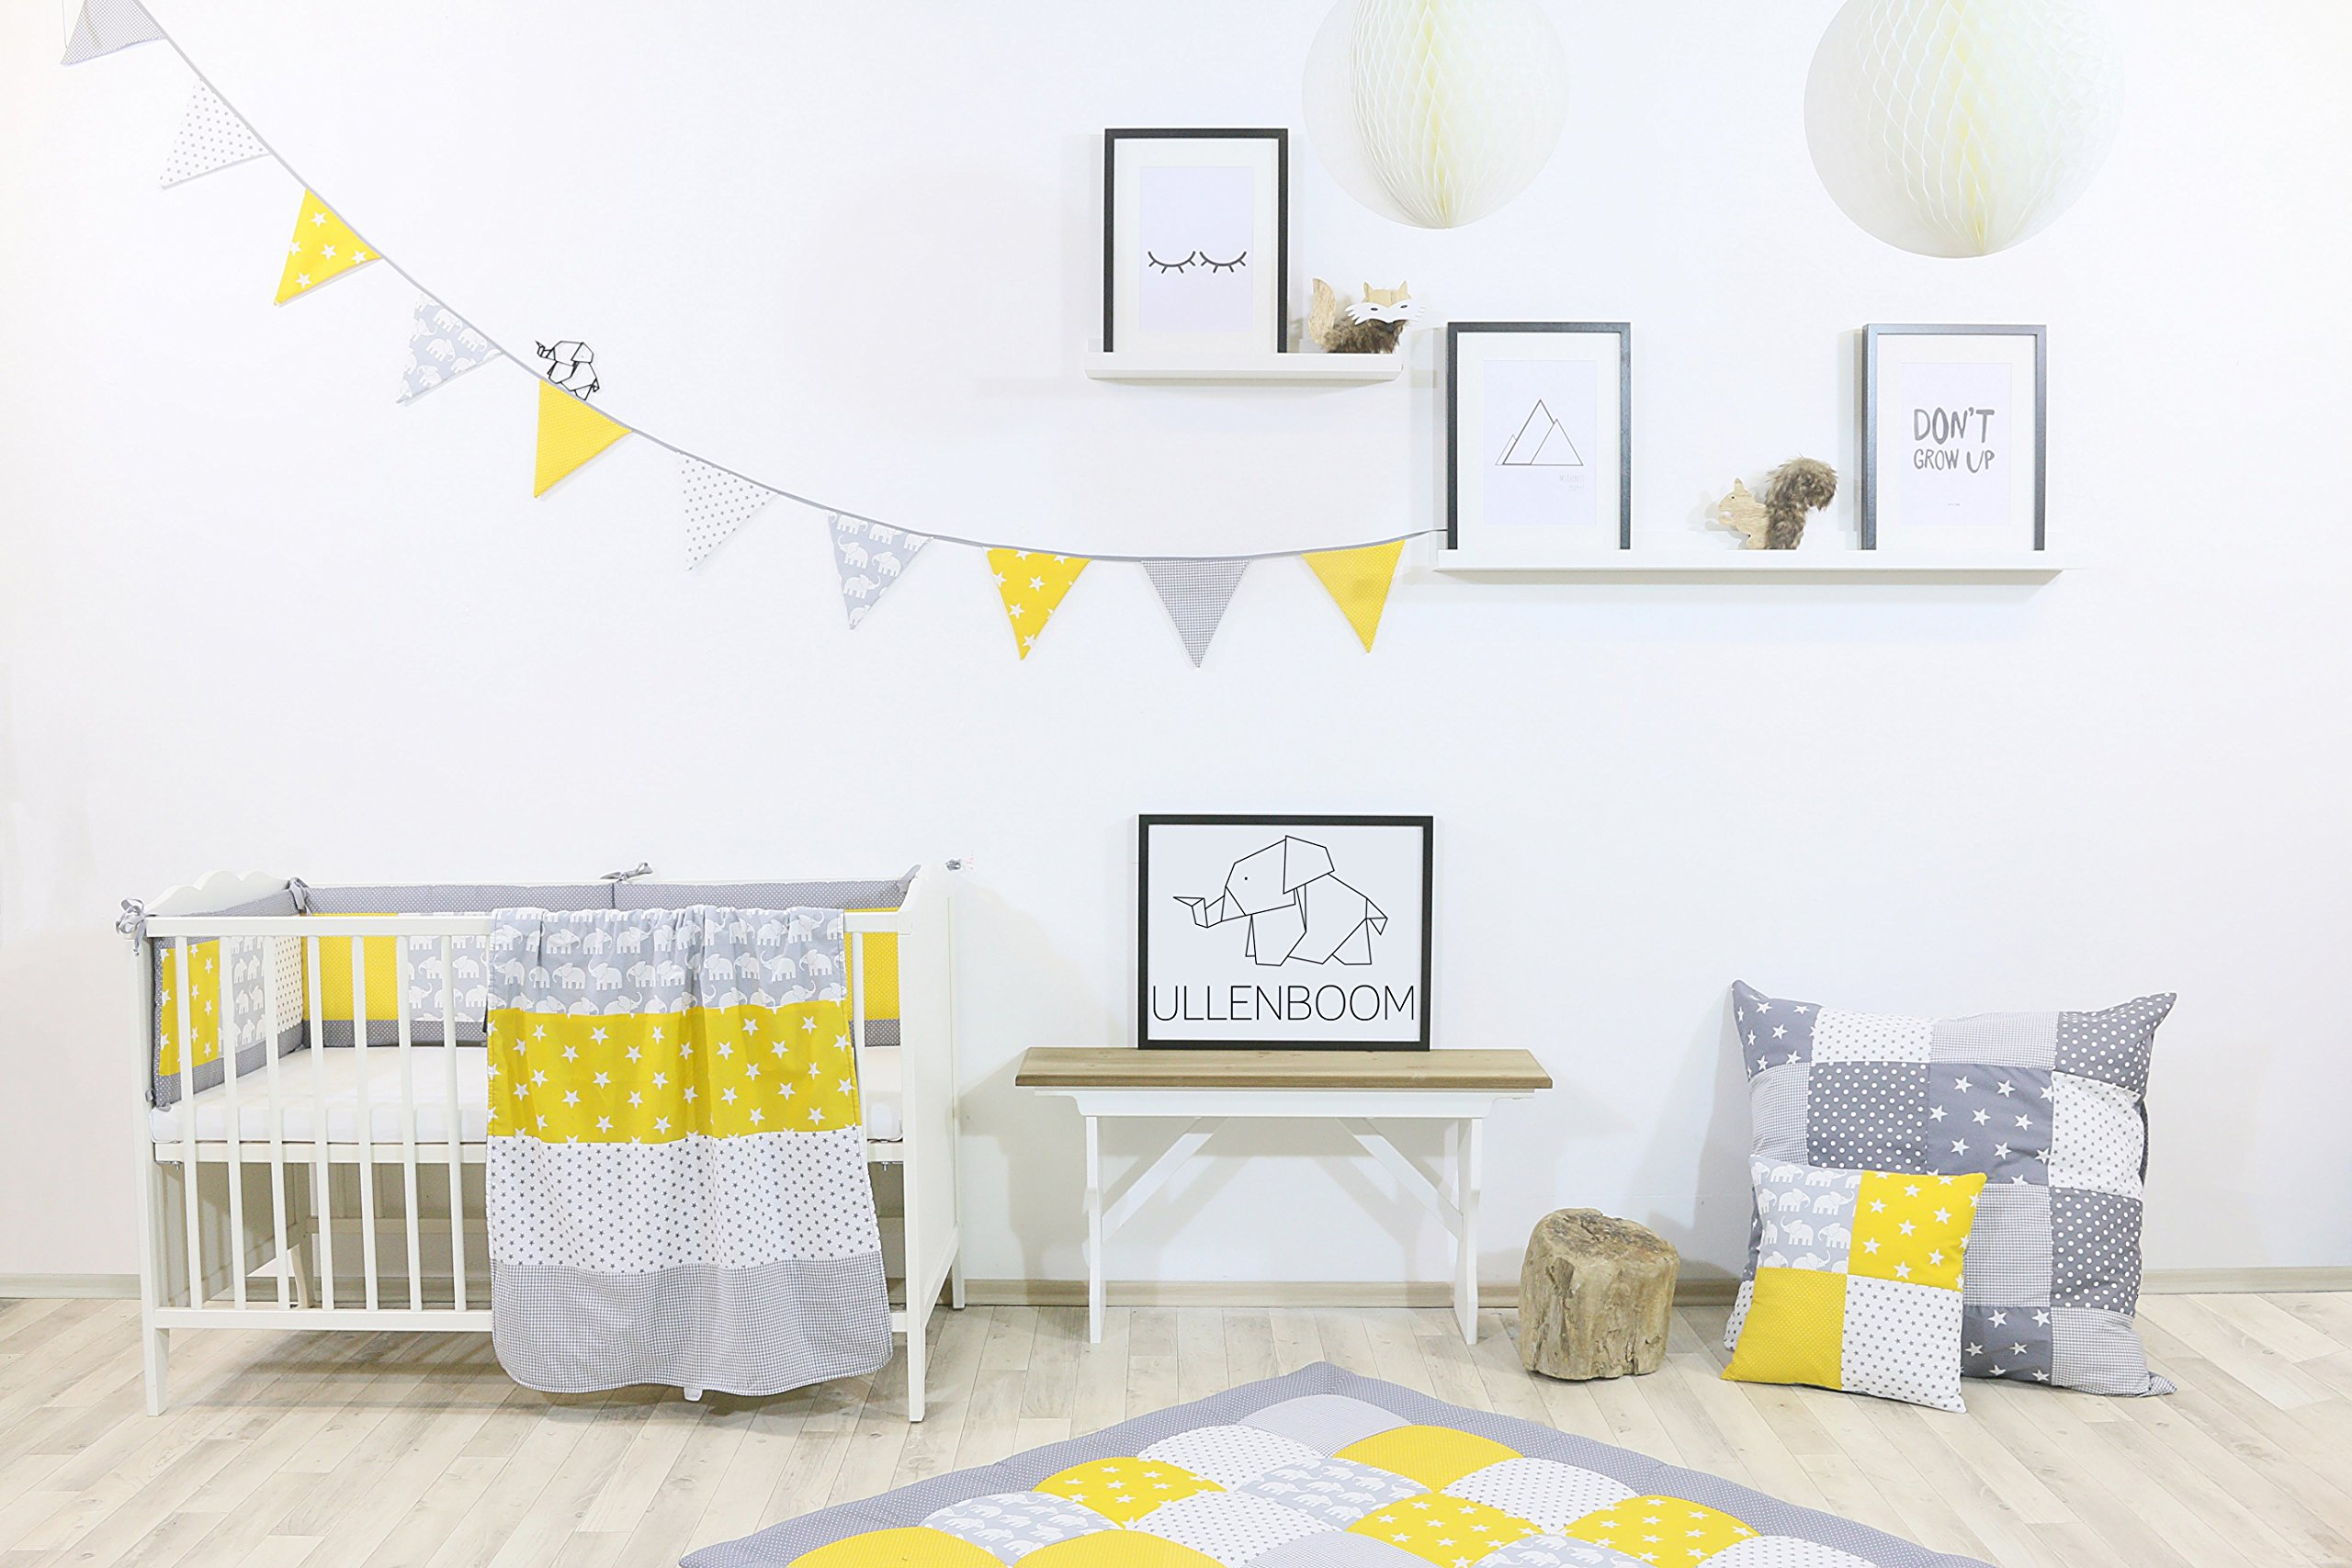 ULLENBOOM® Bumper- Yellow Elephants (400x 30cm Baby playpen Bumper, Full Surround Bumper Pads for 100x 100cm playpen) ULLENBOOM This 400x 30cm patchwork bumper serves as a protective insert and surround for 100x 100cm playpens, to provide babies with protection- especially head protection- from playpen bars The sizes 200x 30cm and 400x 30cm (full surround) are for playpens- the 'full surround' bumper comes in two sections. ULLENBOOM also offers additional sizes for 140x 70cm and 120x 60cm cots These bumpers can be washed at 30 °C and the materials used are certified according to the Oeko-Tex standard (tested for harmful substances, hypoallergenic); smooth outer fabric: 100% cotton (Oeko-Tex); soft, thick wadding: 100% polyester (Oeko-Tex) 3